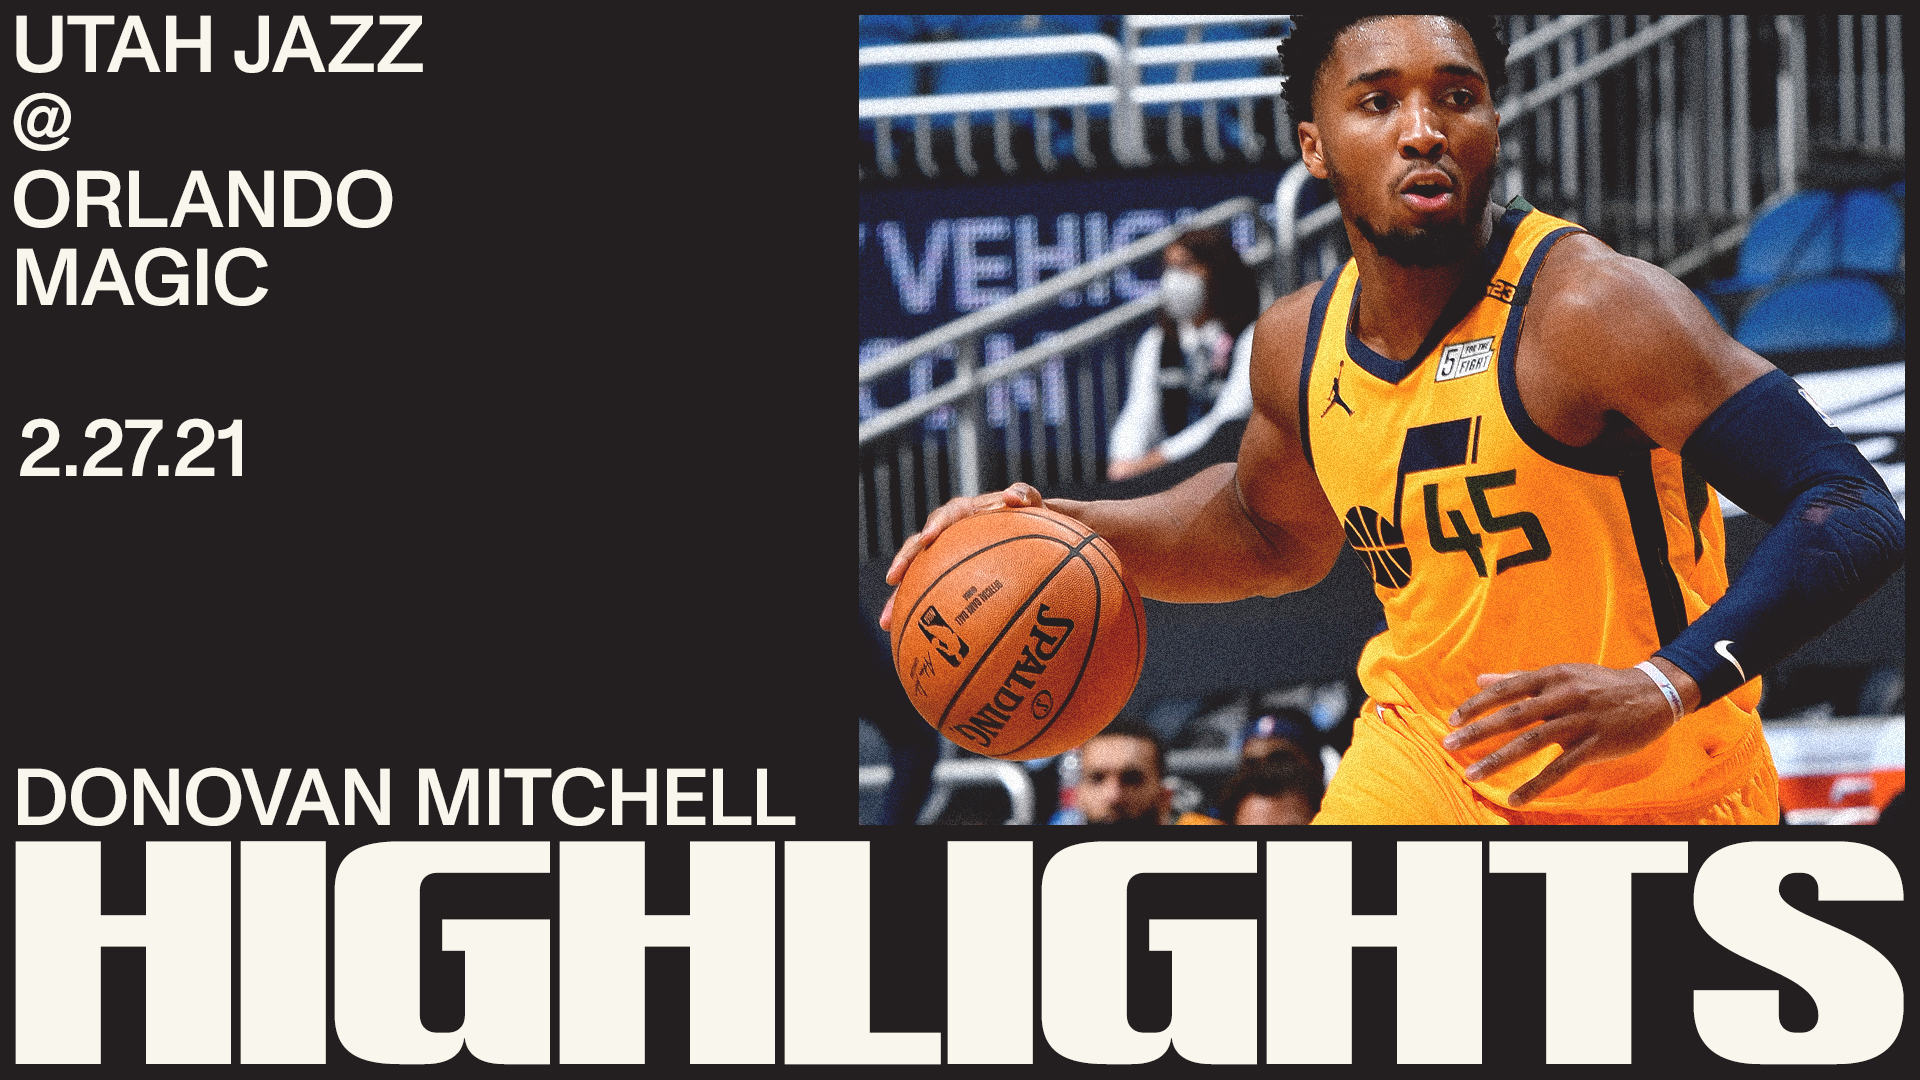 Highlights: Donovan Mitchell—31 points, 6 assists